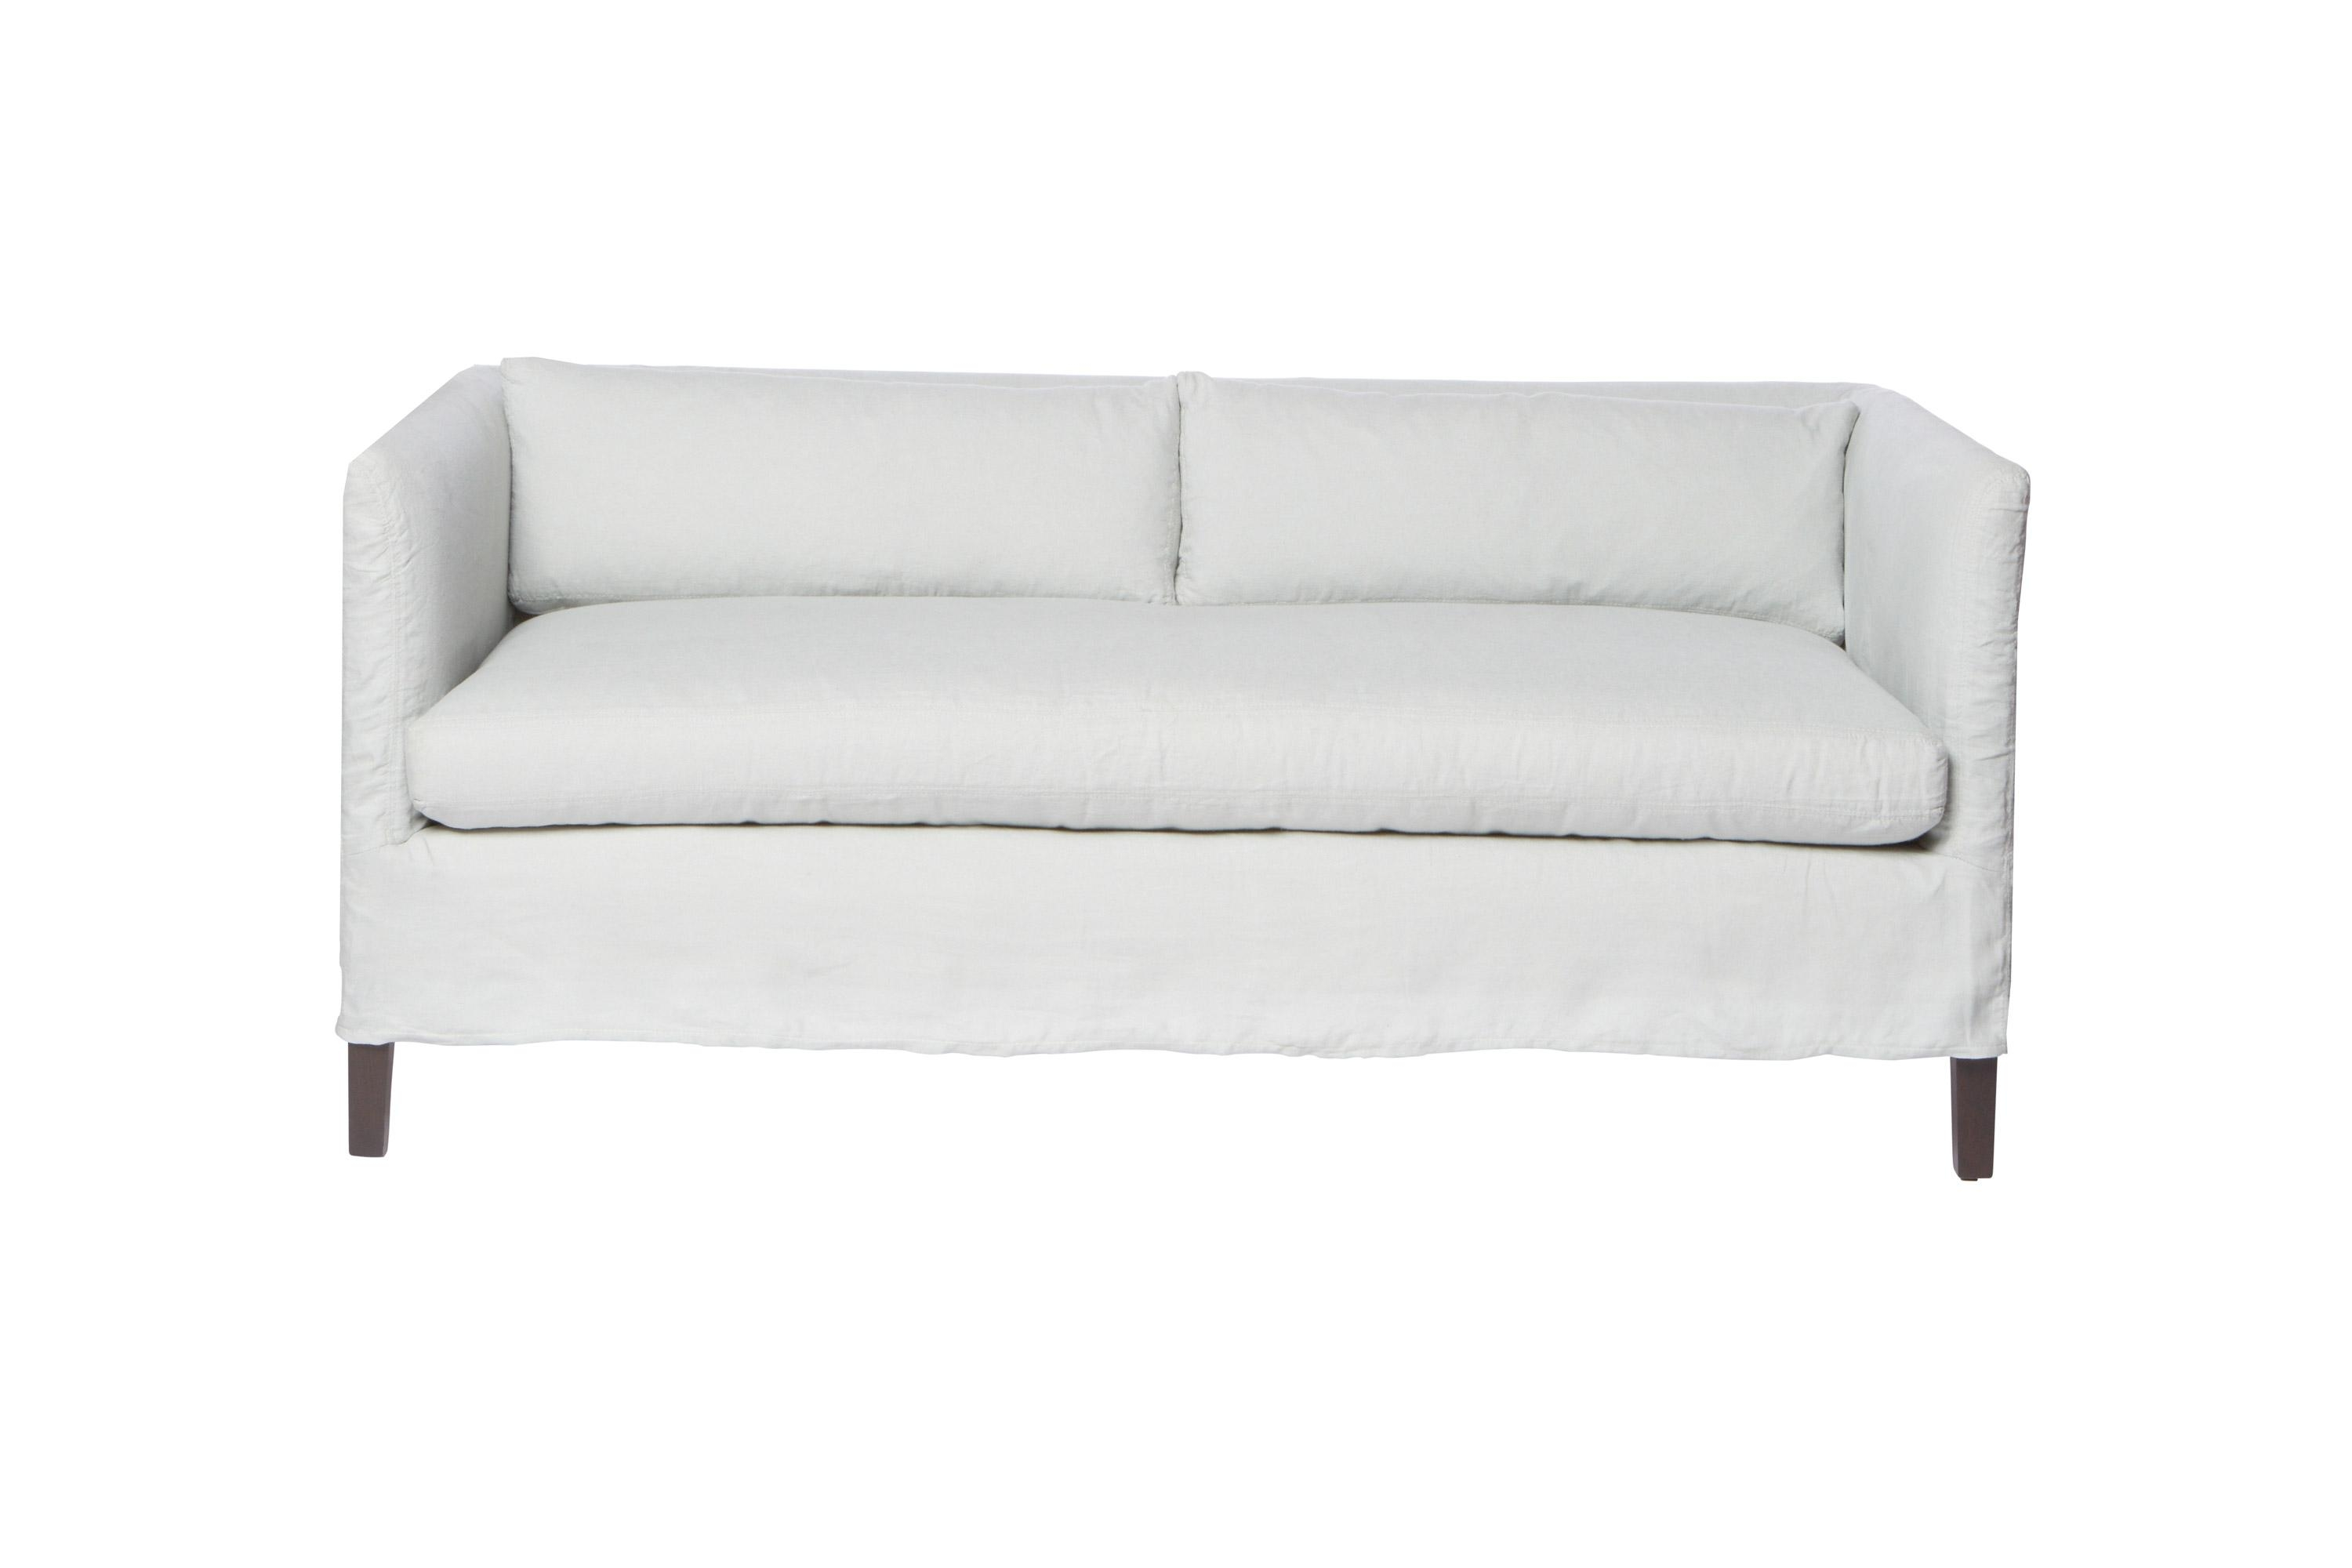 Sofas Inside Armless Sofa Slipcovers (Image 17 of 20)